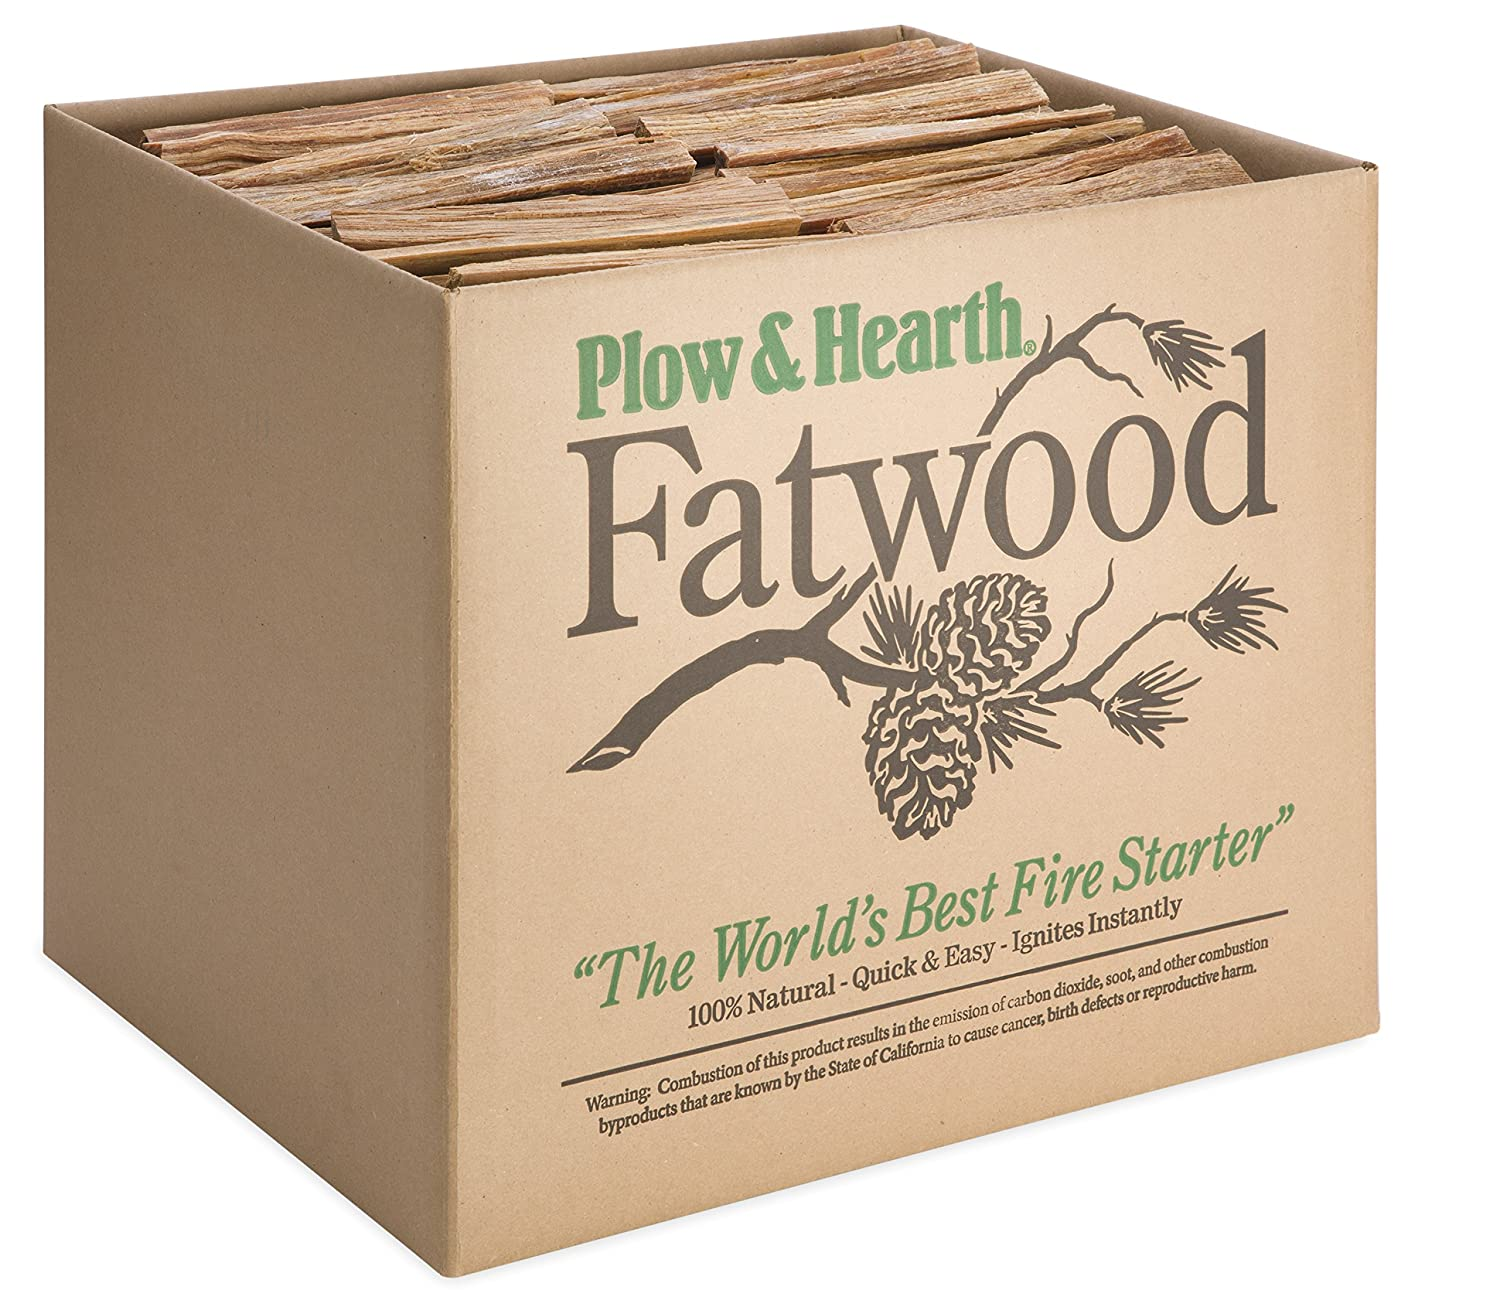 Fatwood 50 LB Box Fire Starter All Natural Organic Resin Rich Eco Friendly Kindling Sticks for Wood Stoves, Fireplaces, Campfires, Fire Pits, Burns Quickly and Easily, Safe and Non Toxic Plow & Hearth 12213